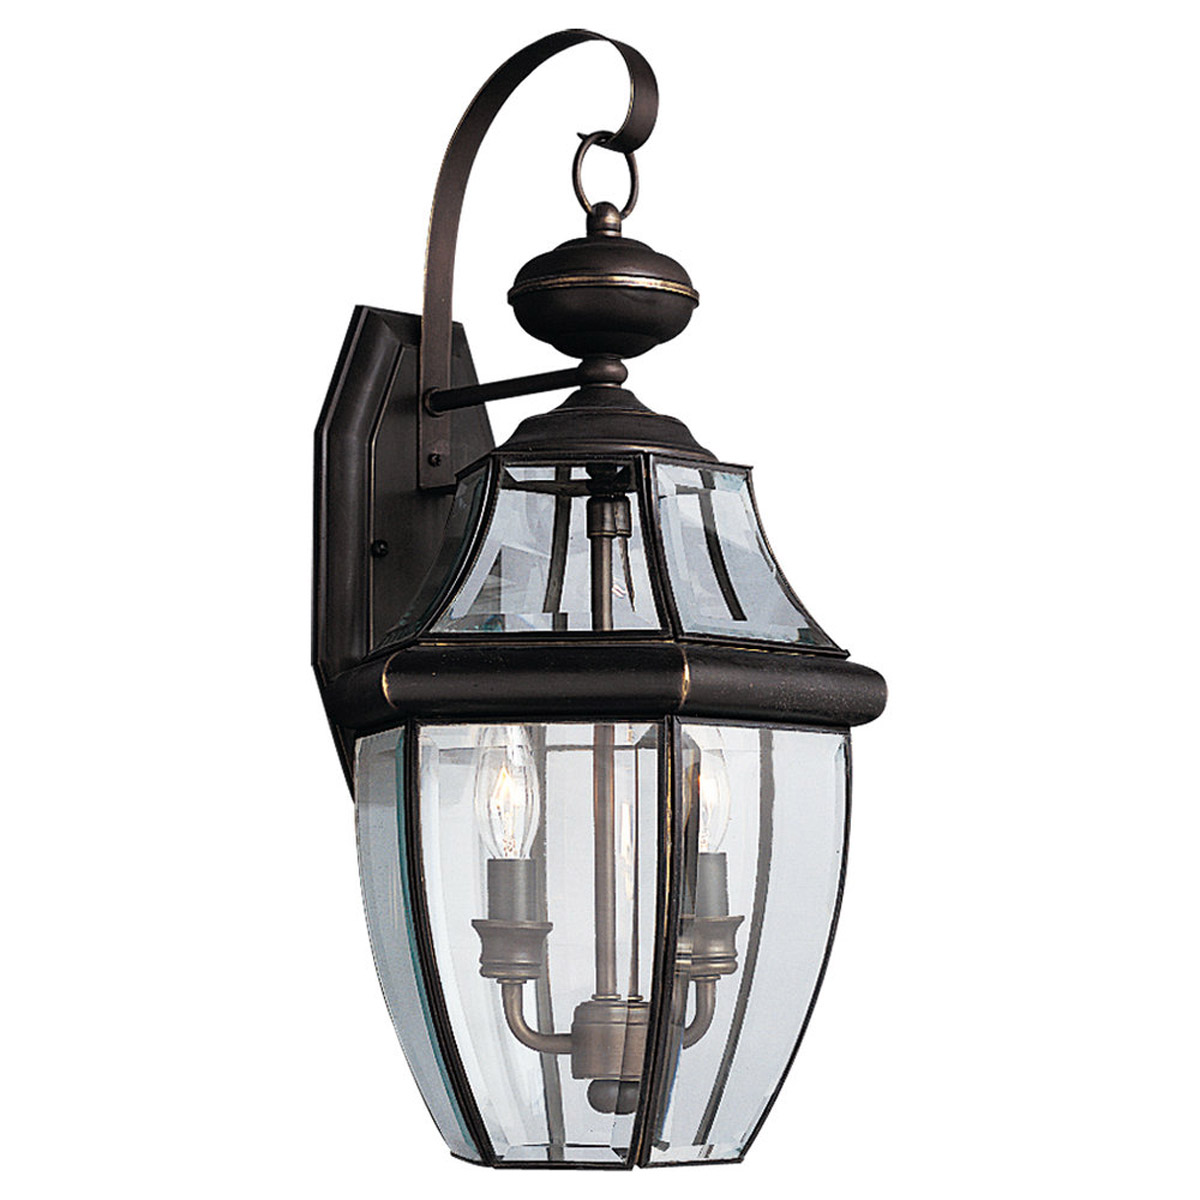 Sea Gull Lighting Lancaster 2 Light Outdoor Wall Lantern in Antique Bronze 8039-71